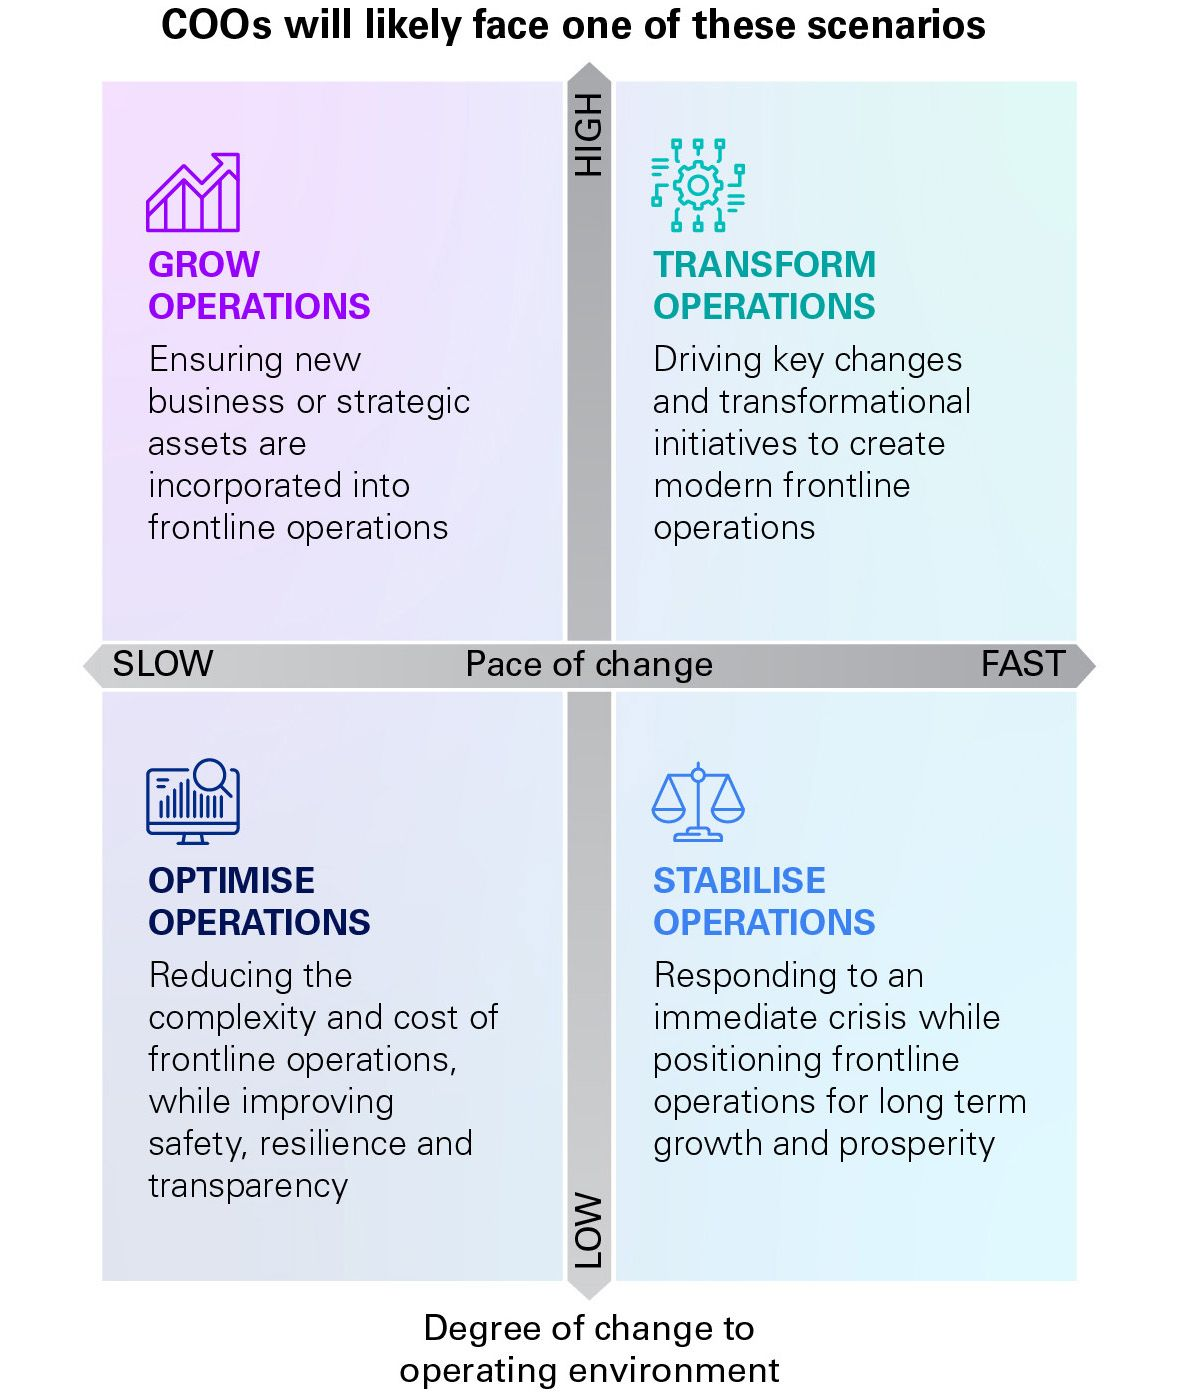 COOs will likely face one of these scenarios: Grow operations, Transform operations, Optimise operations, Stabilise operations